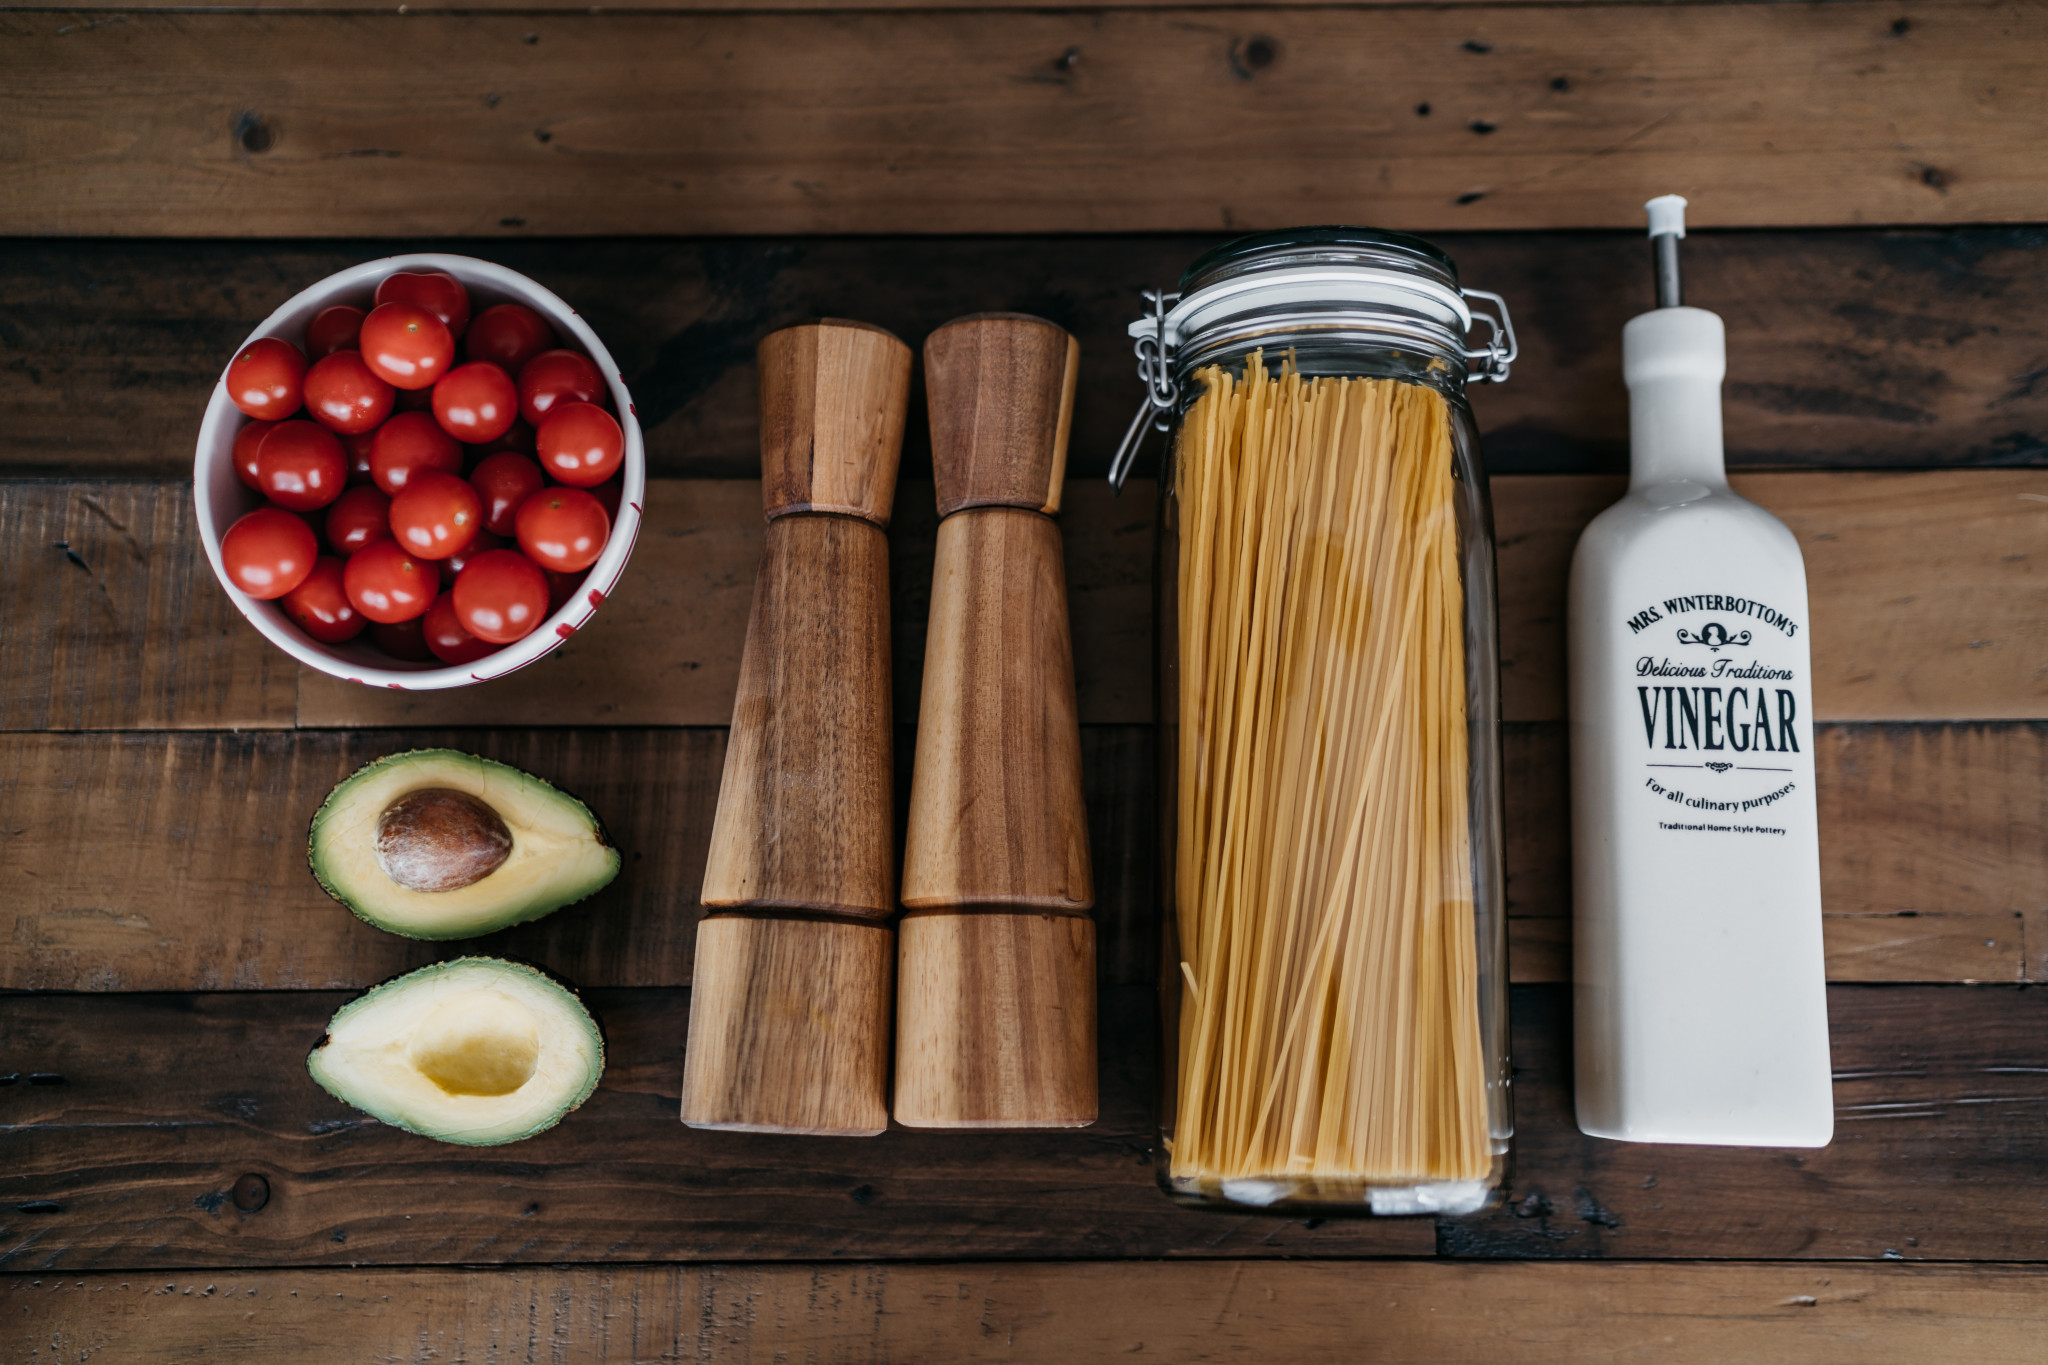 Vegane Food-Inspiration #3: Spaghetti mit Avocado-Creme